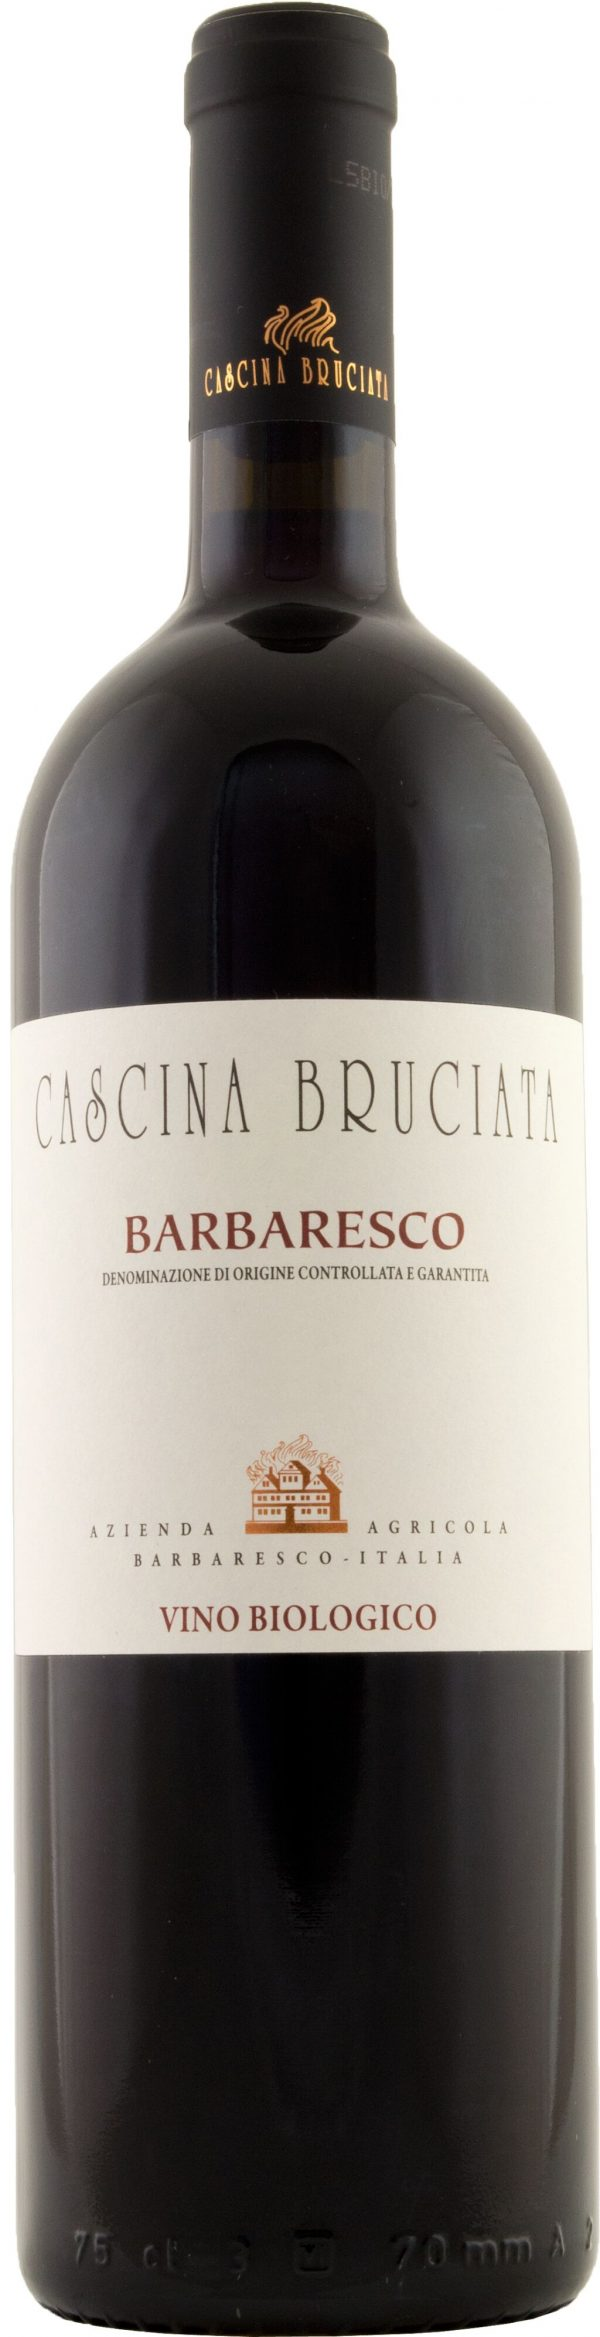 Cascina Bruciata Barbaresco 75cl